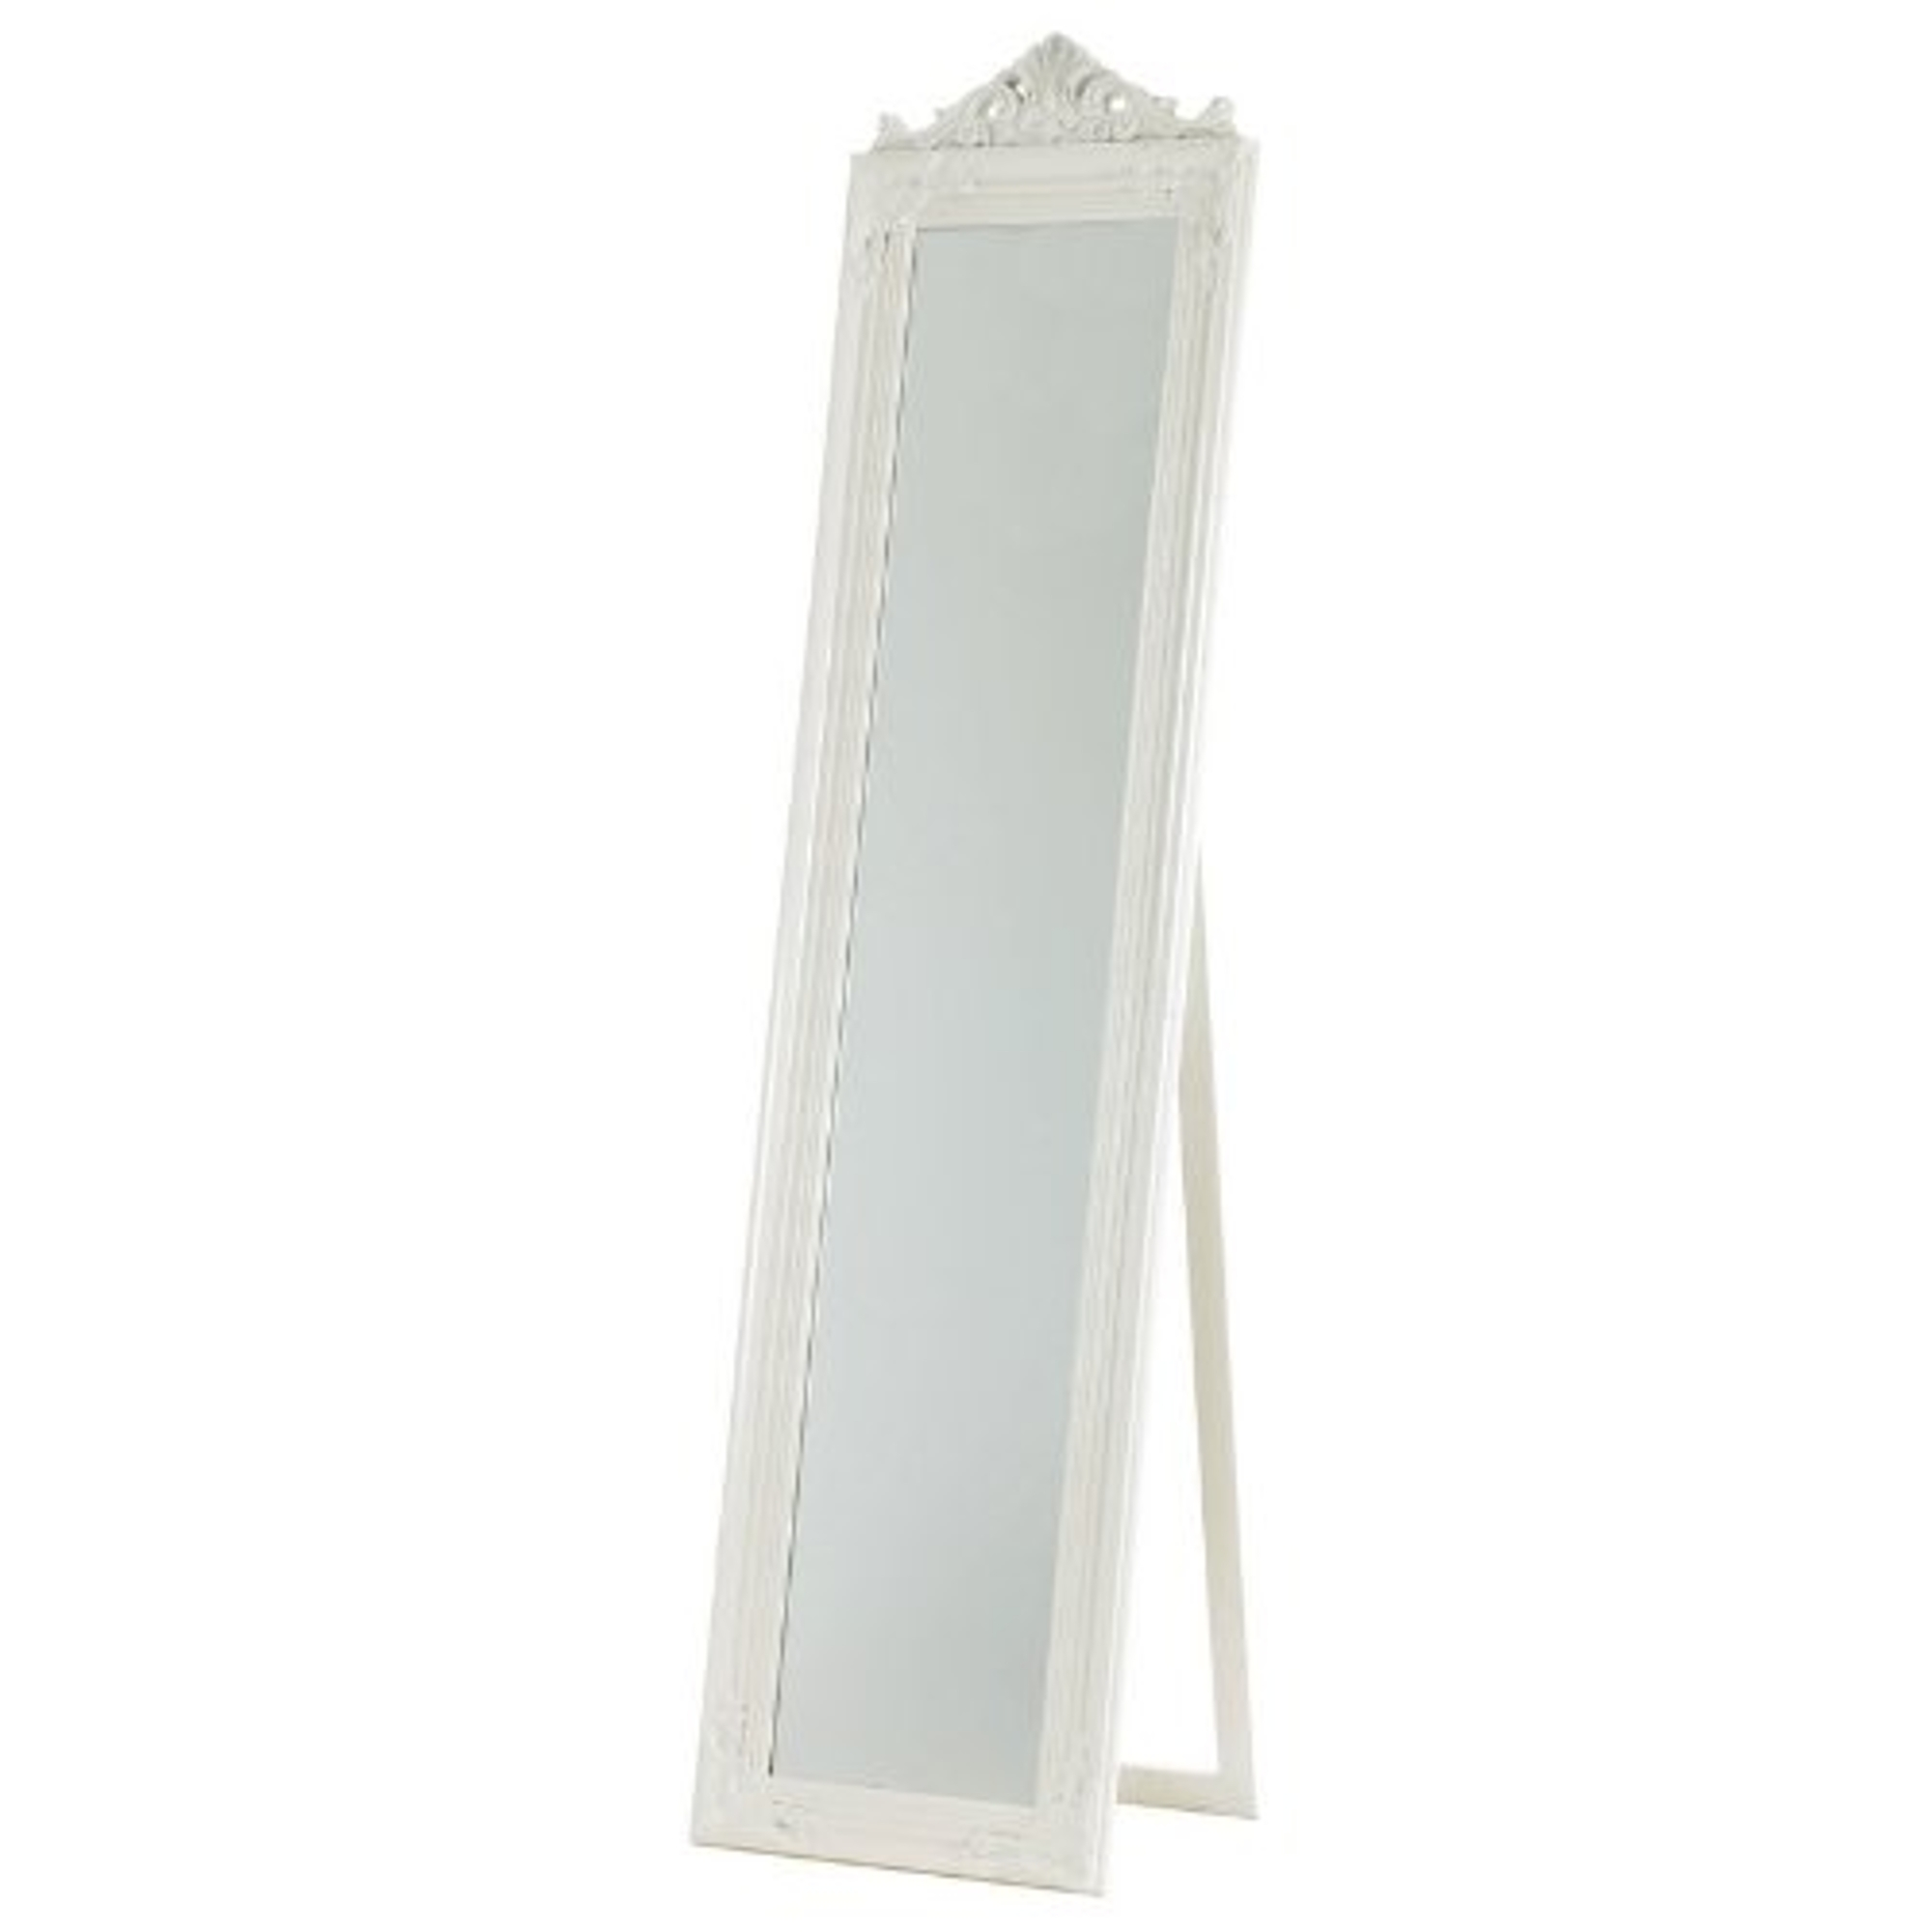 Free standing french style dressing cheval mirror in white for White long standing mirror